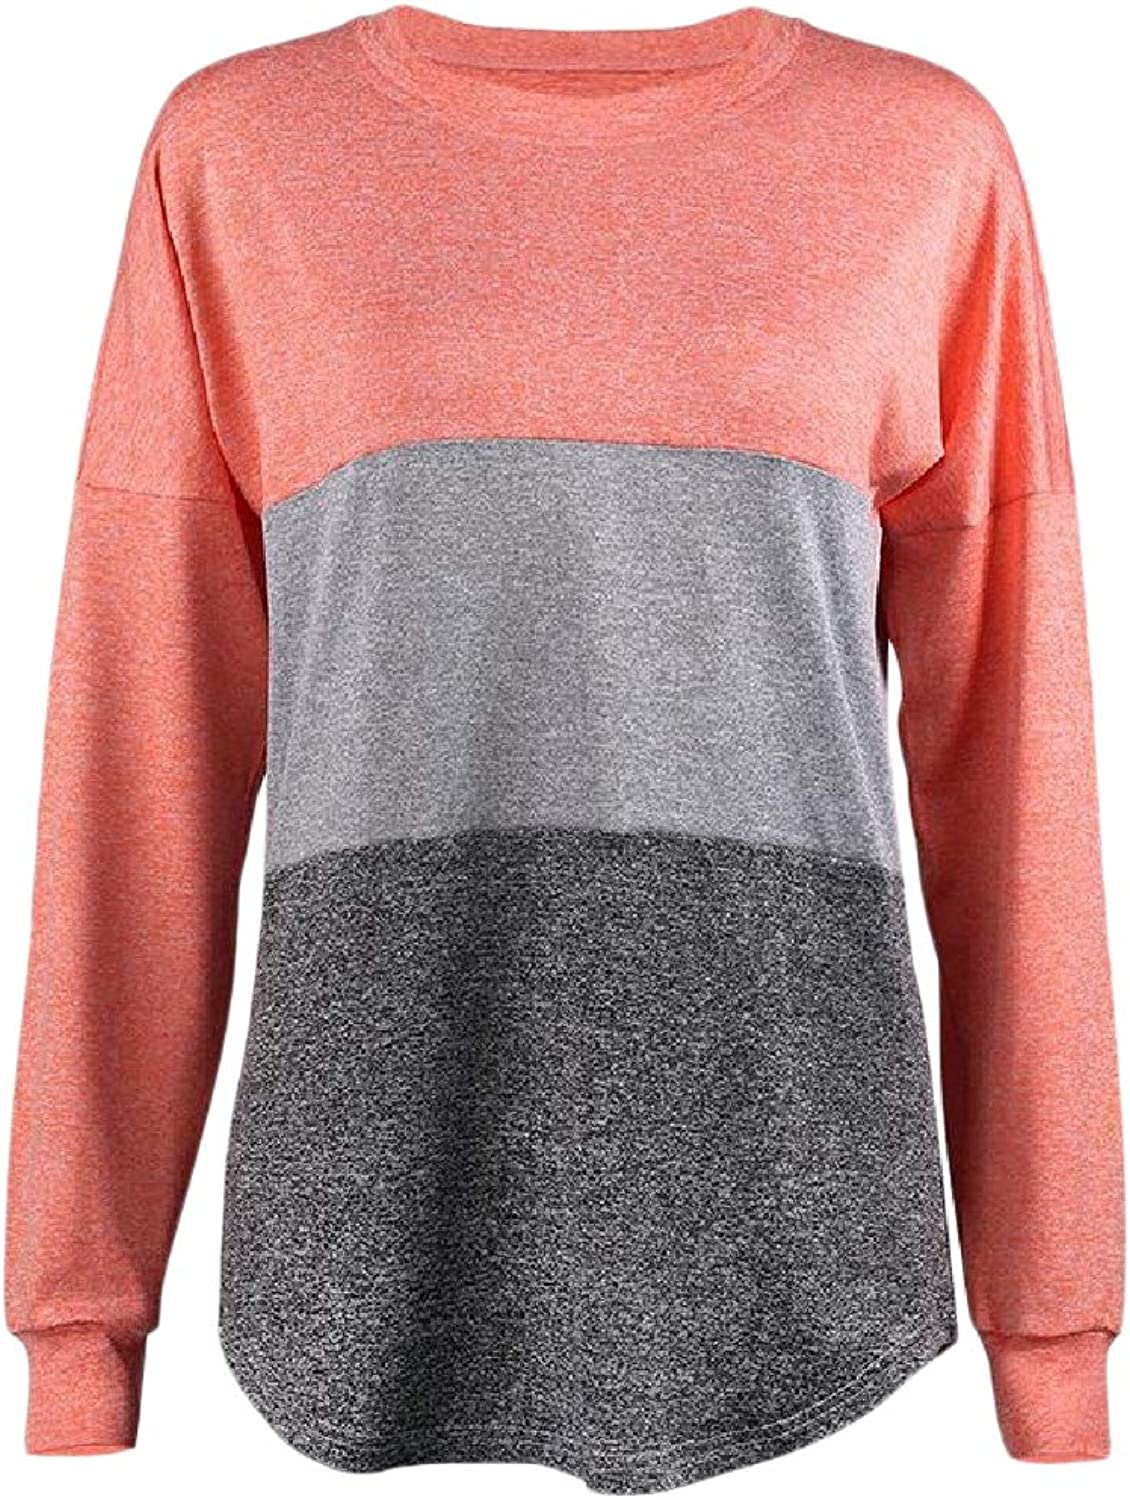 Abetteric Womens Knit Spell color Fashion Top Sweatshirt Comfort Sweater